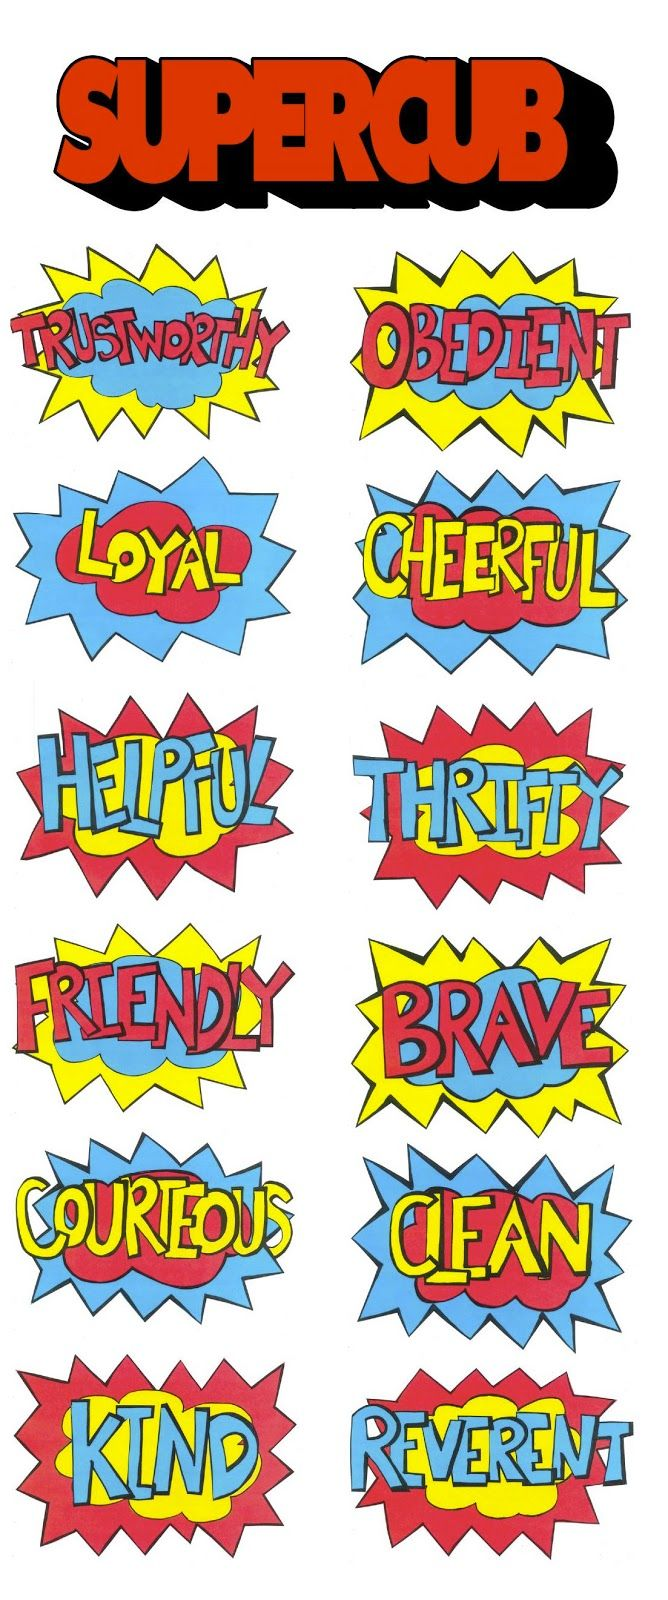 Akela's Council Cub Scout Leader Training: Super Cub Superhero Comic Bubbles with the points of the Scout Law superhero style! For Cub Scouts FREE PRINTABLE CLIP ART IMAGE